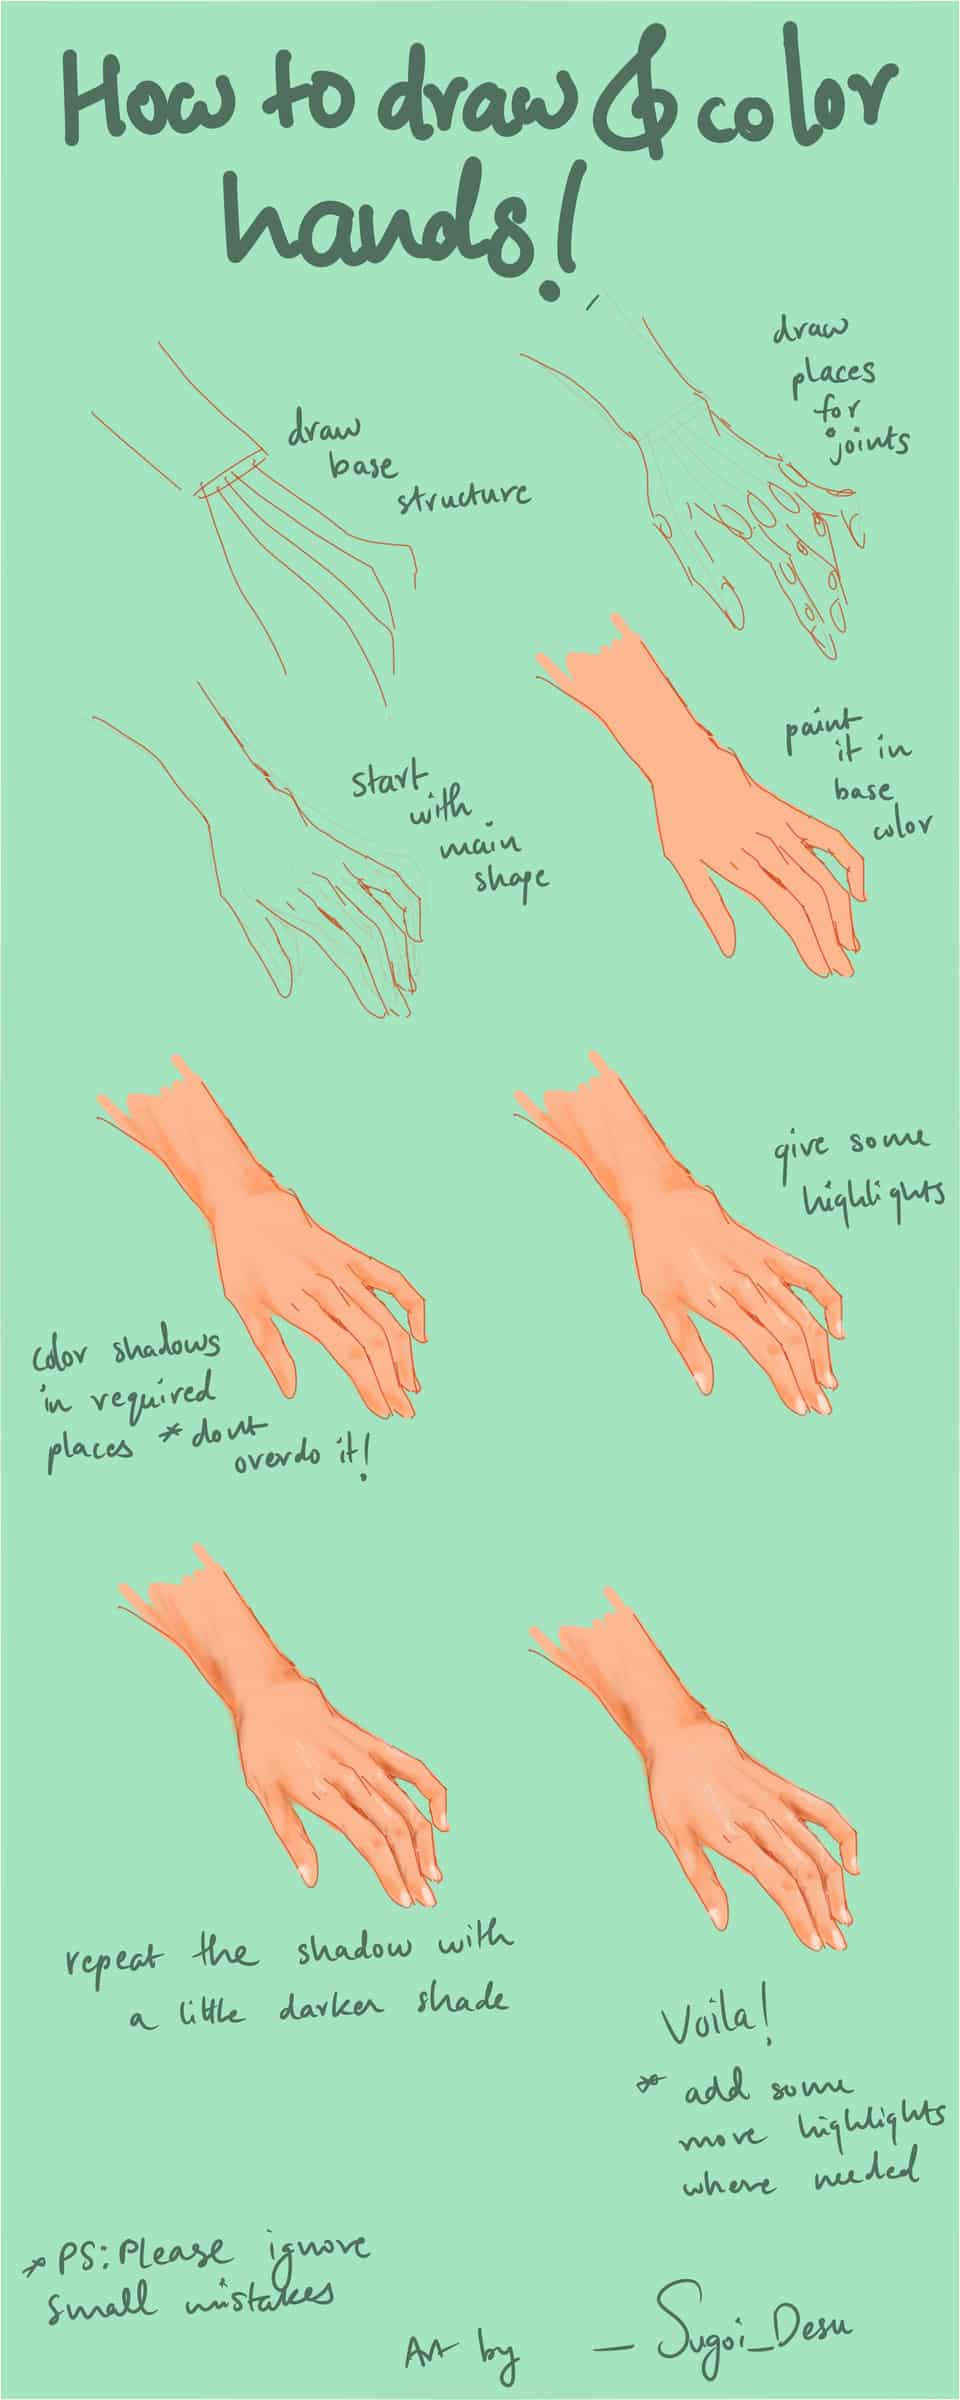 JUST A SMALL TUTORIAL ON HANDS